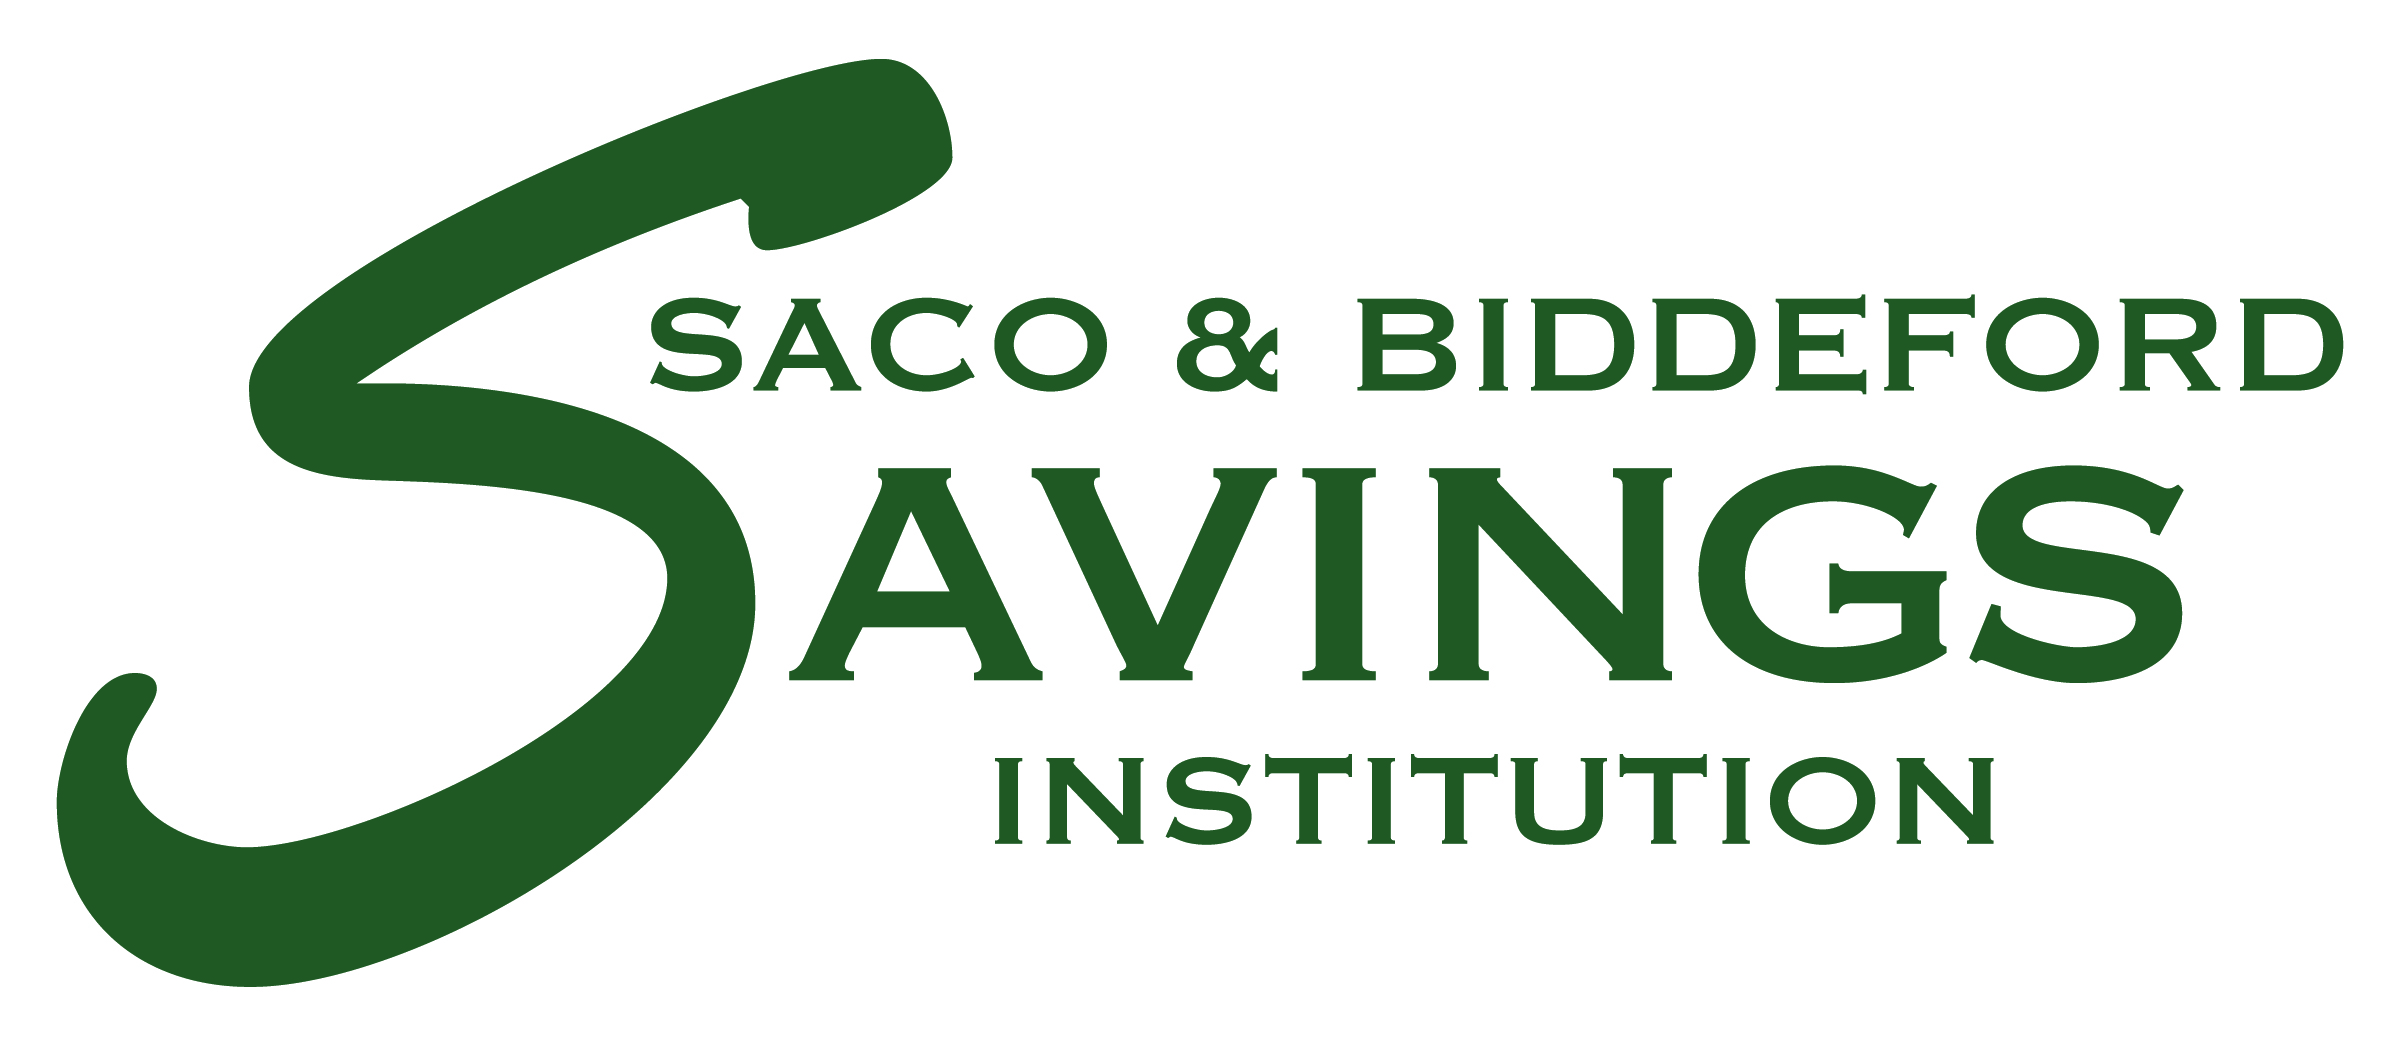 Saco & Biddeford Savings Institution